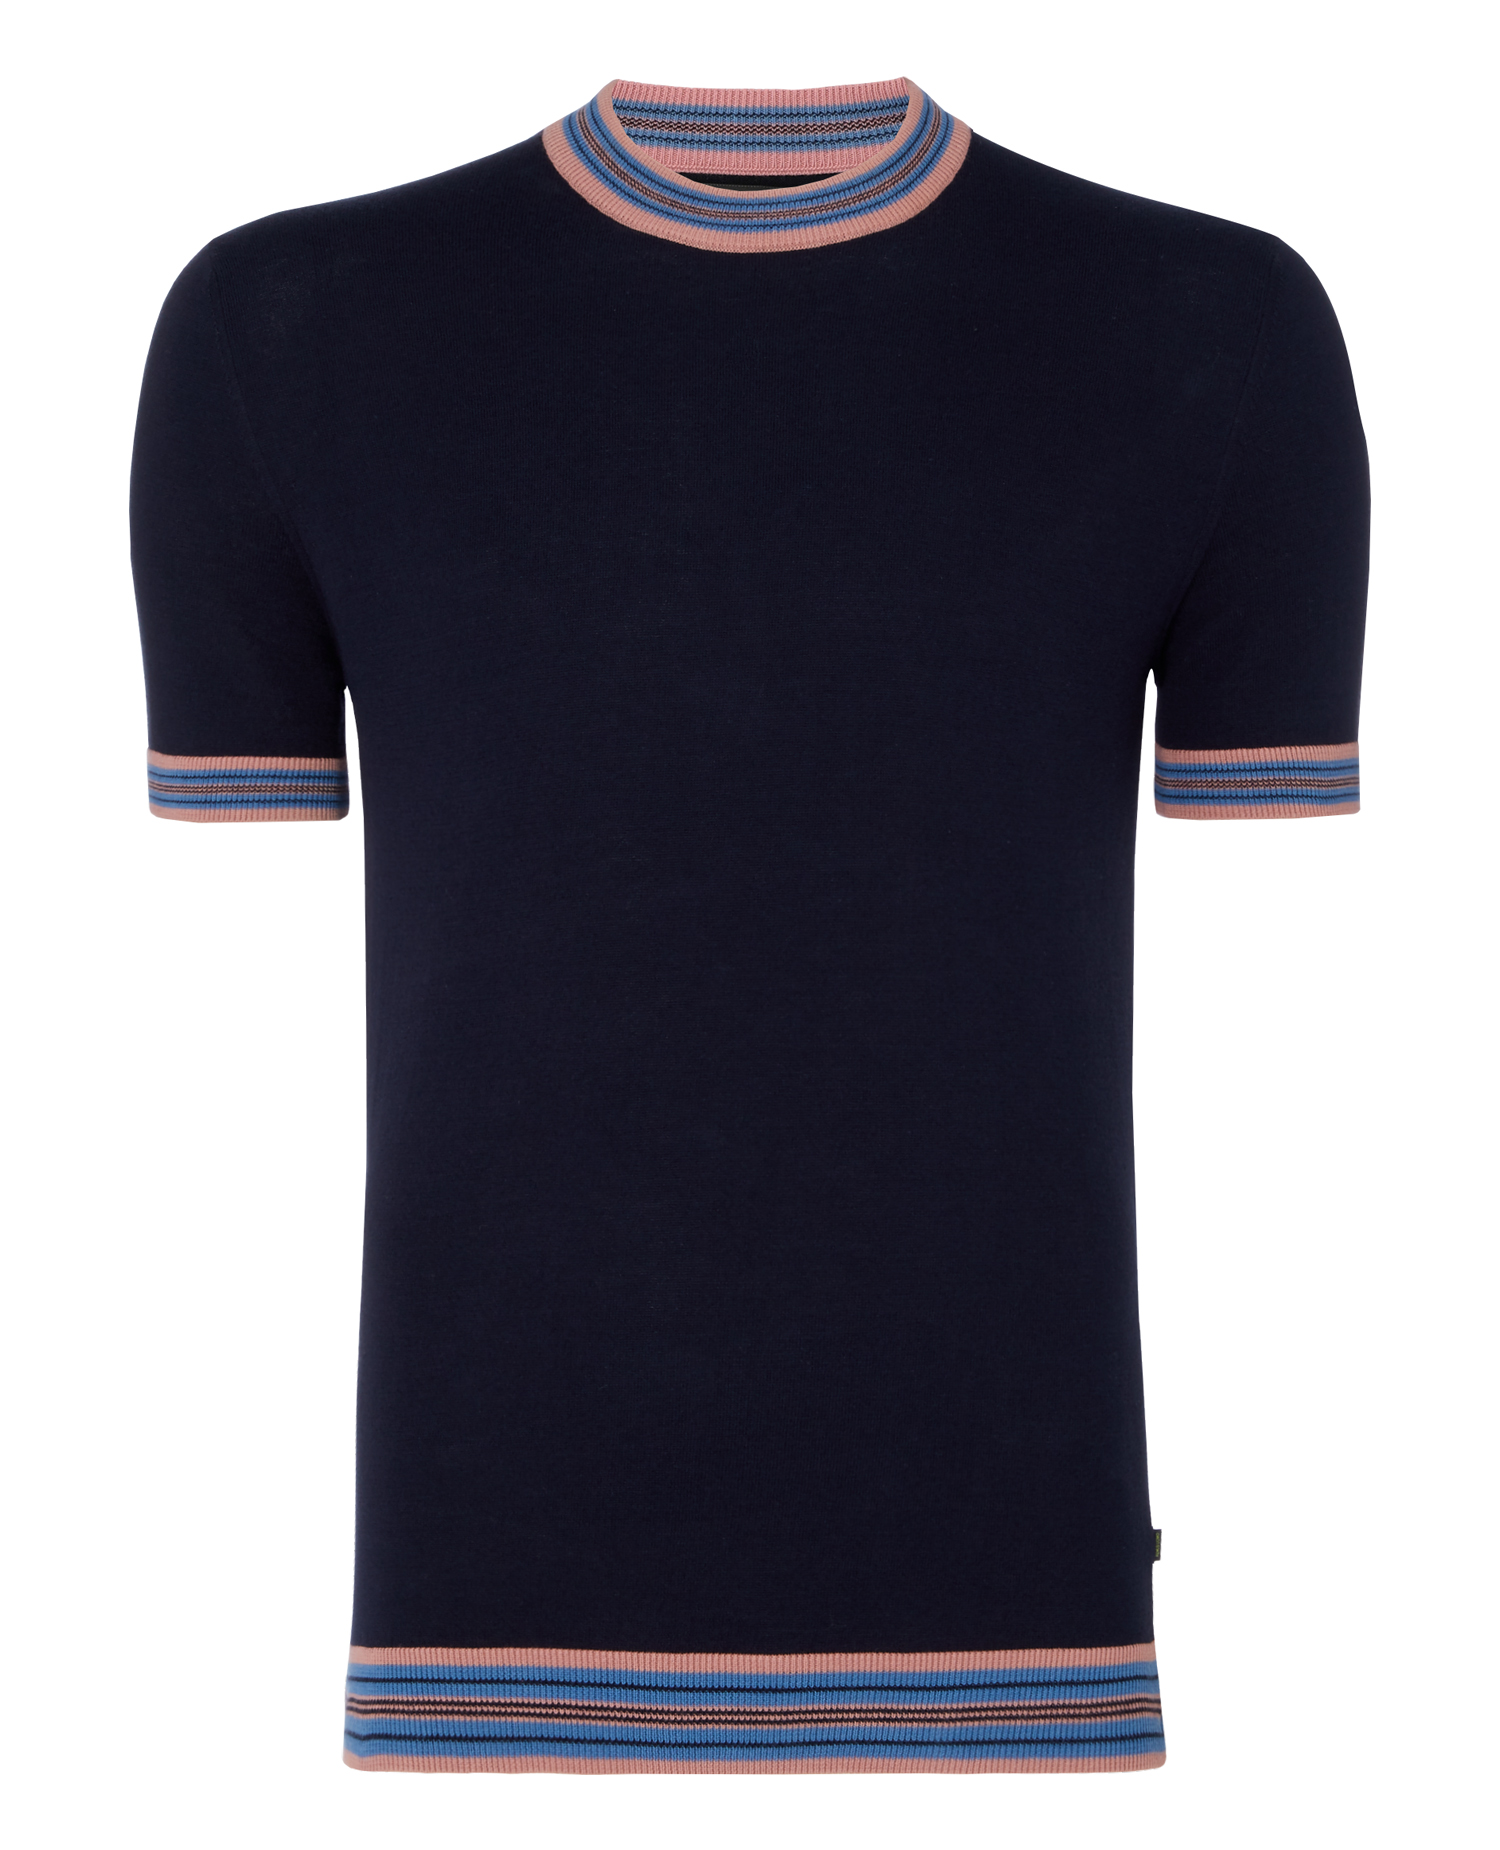 Slim Fit Knitted Cotton Crew Neck T-Shirt